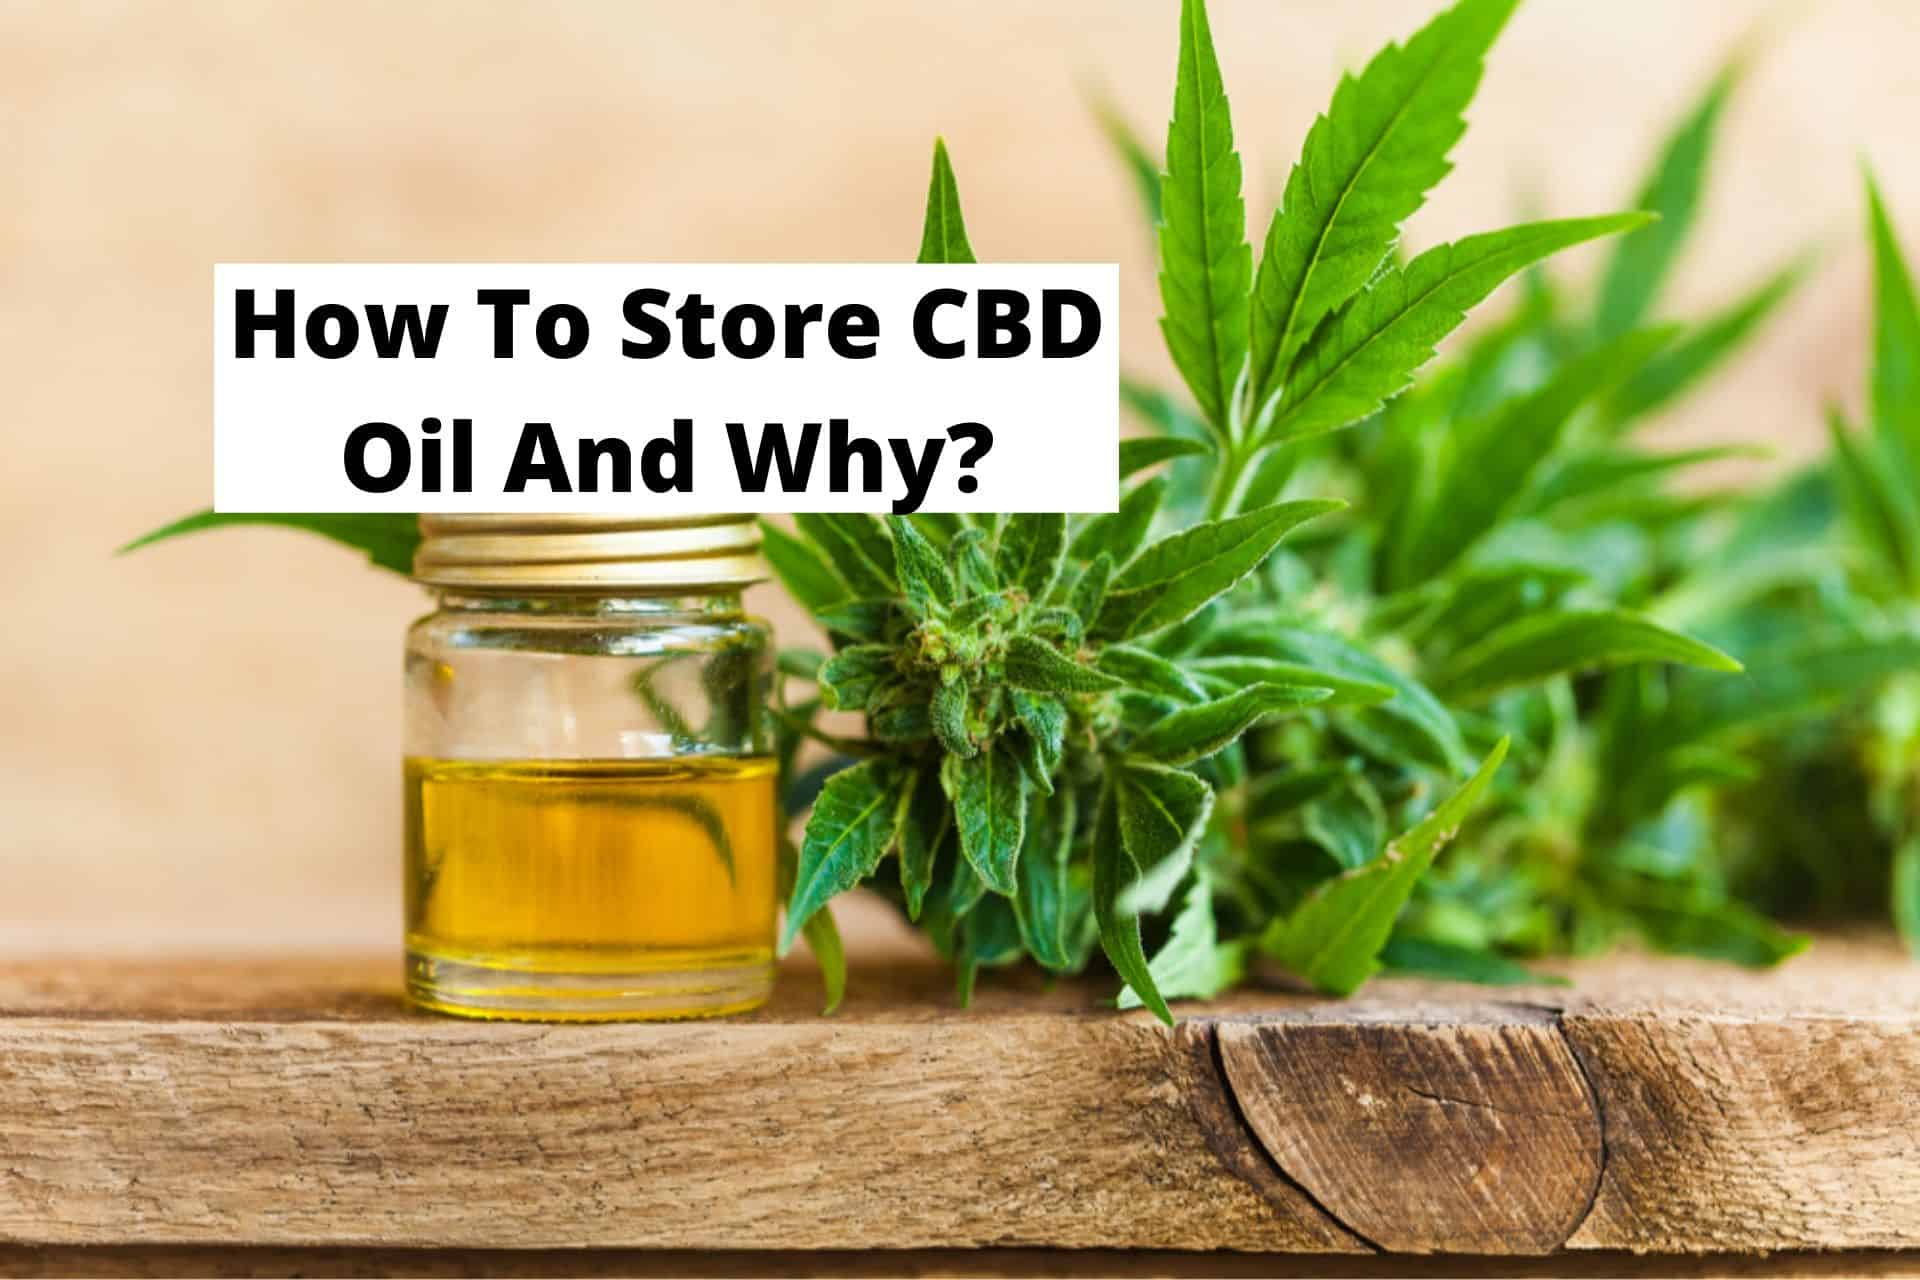 How To Store CBD Oil And Why?